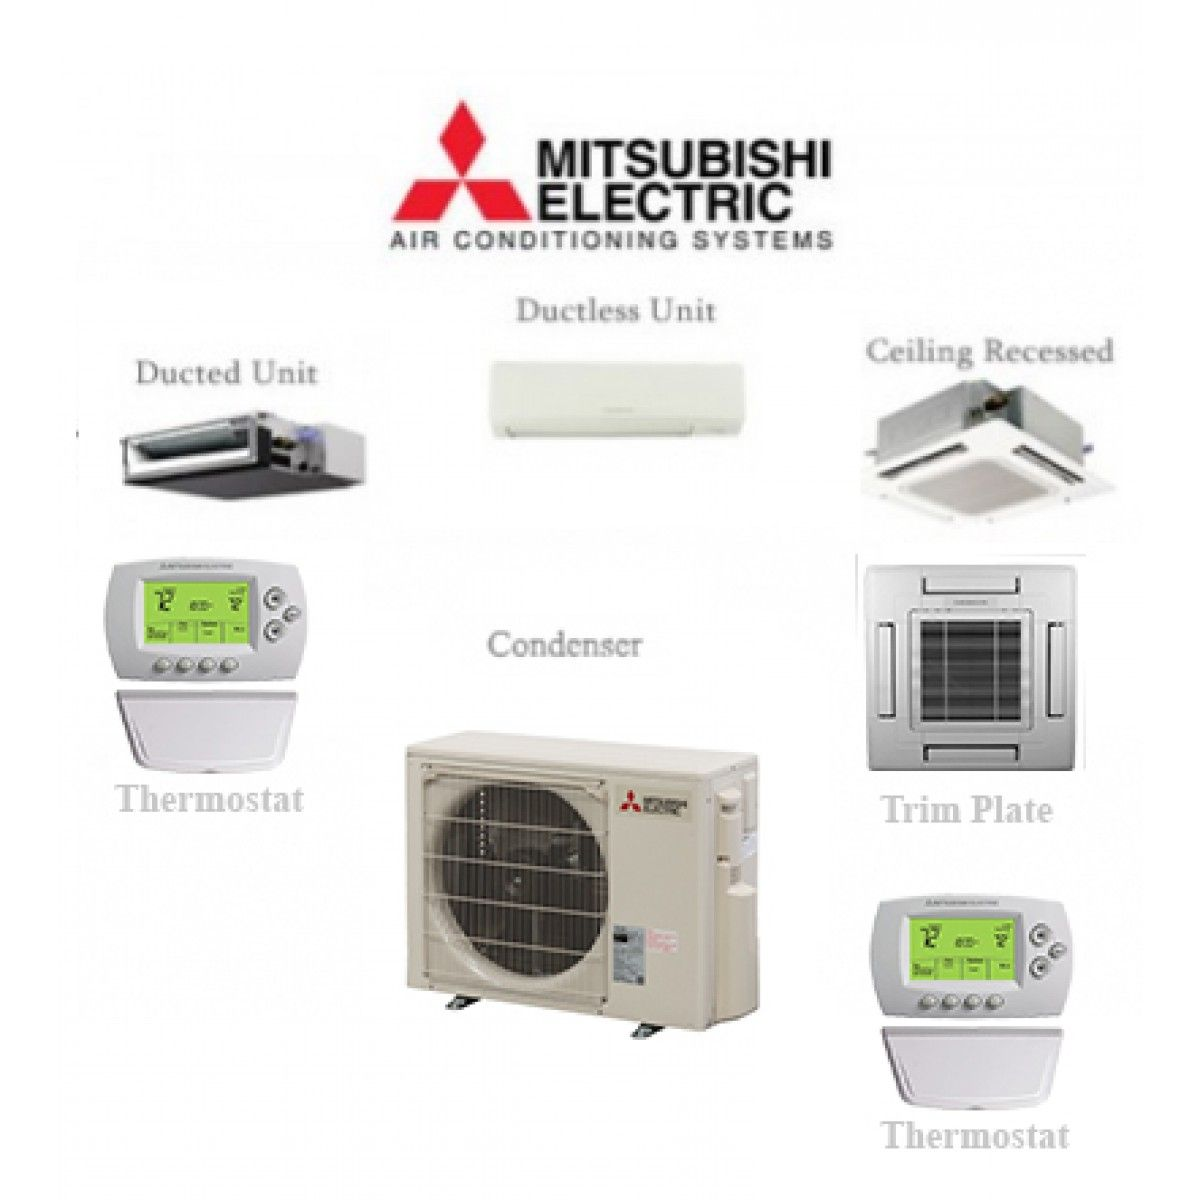 mitsubishi m ac msy miami d series air installation chills conditioning